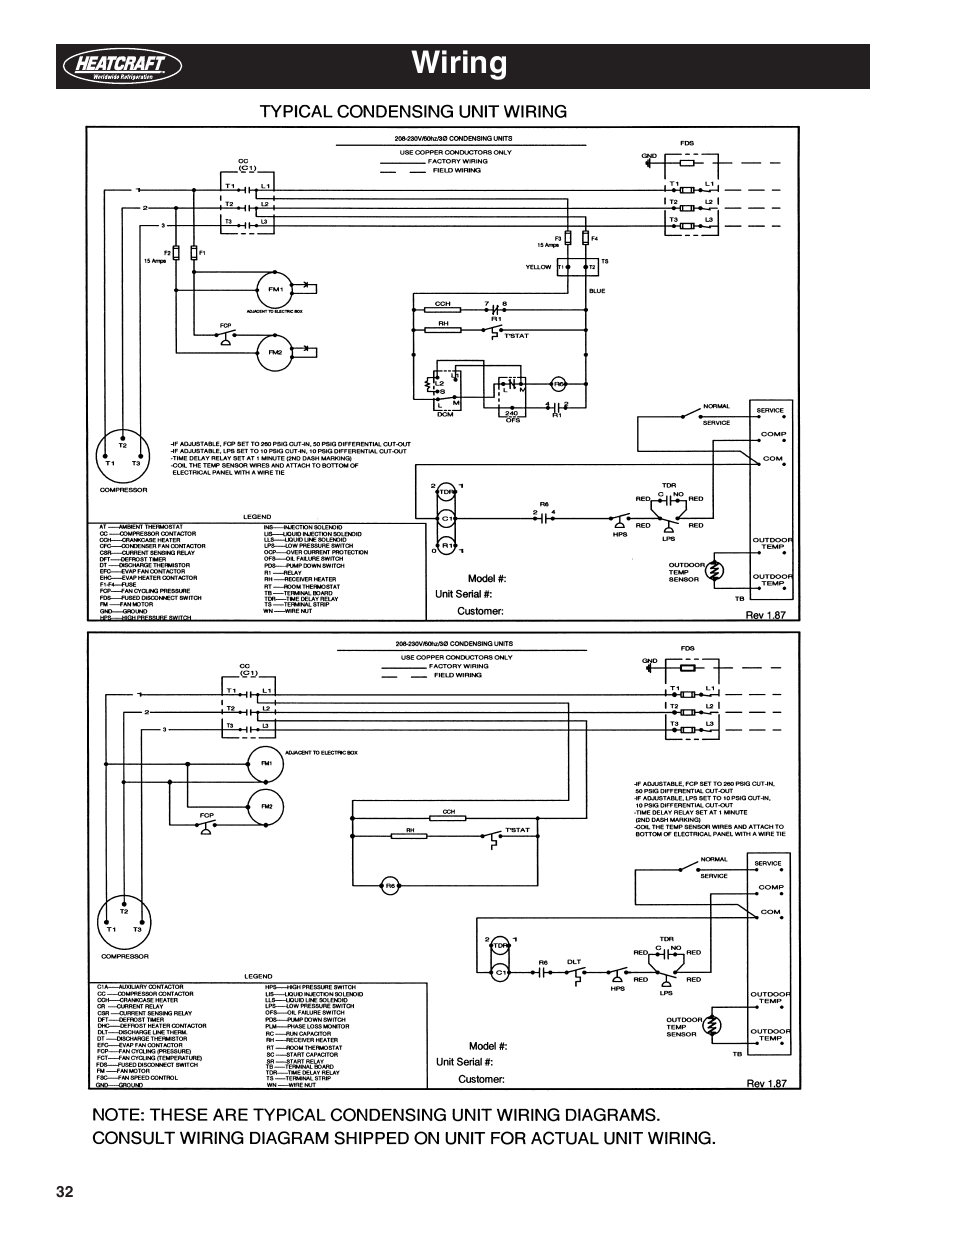 Heatcraft Condensing Units Wiring Diagram Contactor Free Download 3ph Condenser Refrigeration Products Beacon Ii H Im 79e User Stone Mountain Ga At